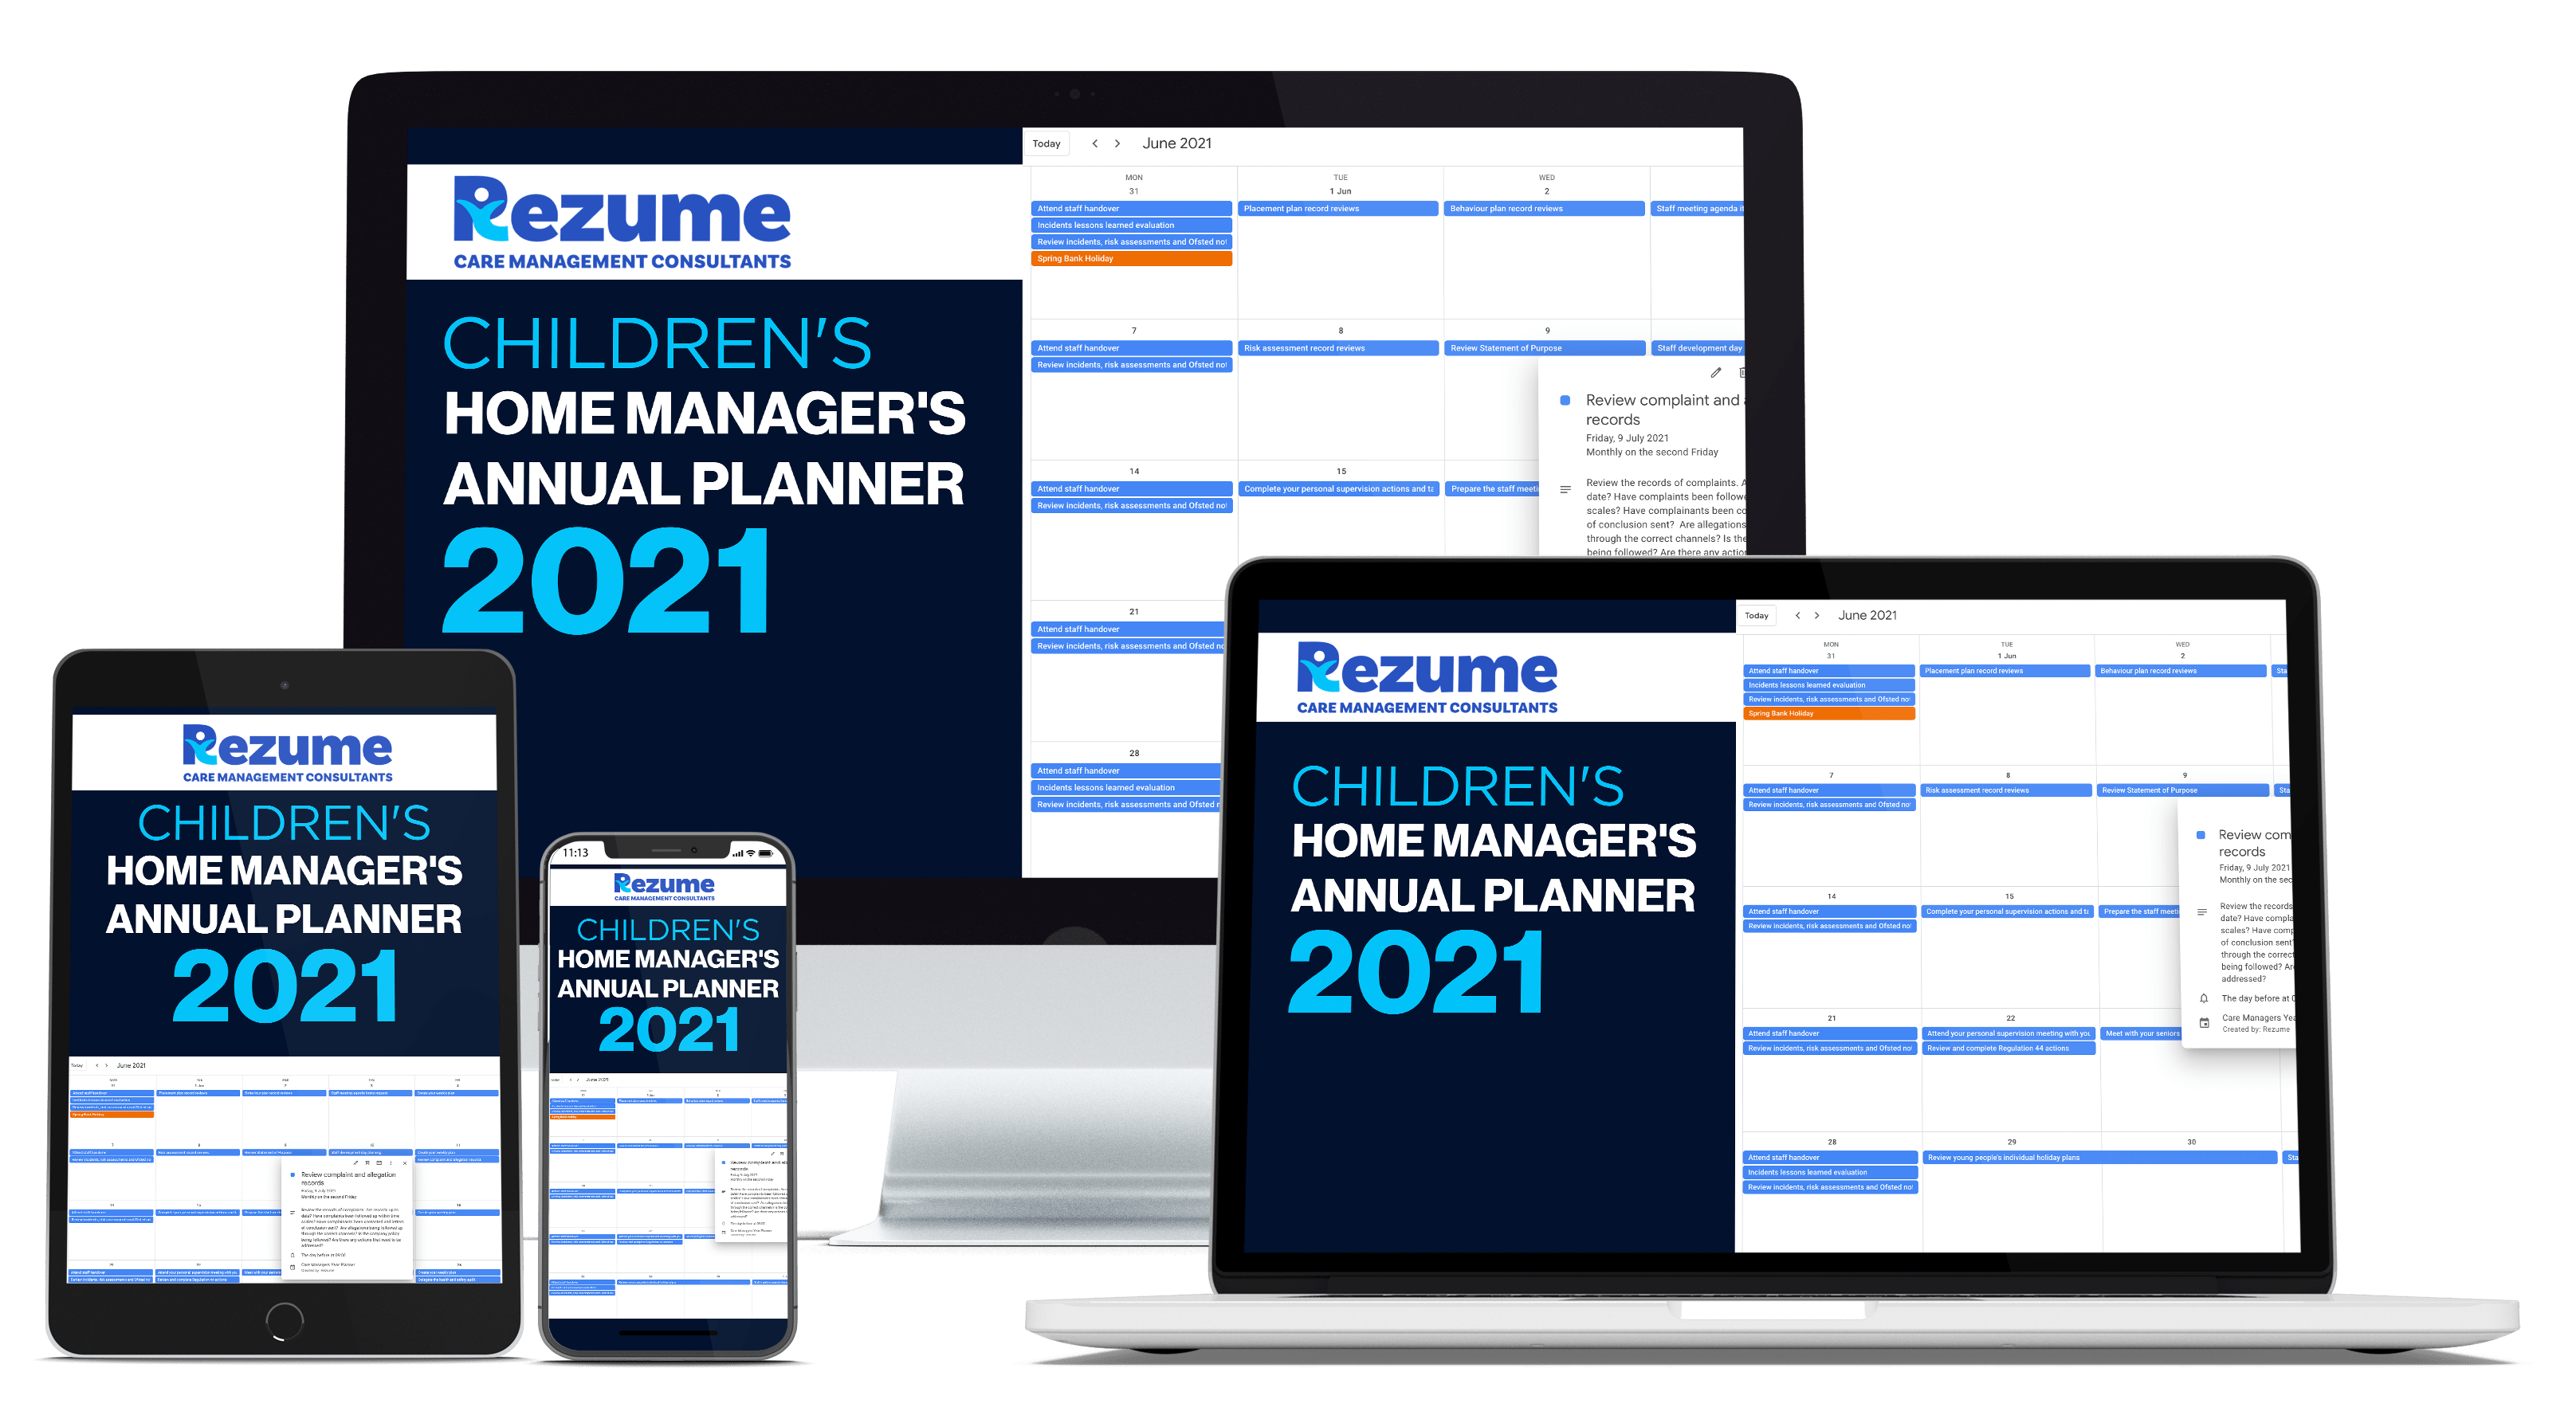 Children's home manager annual planner